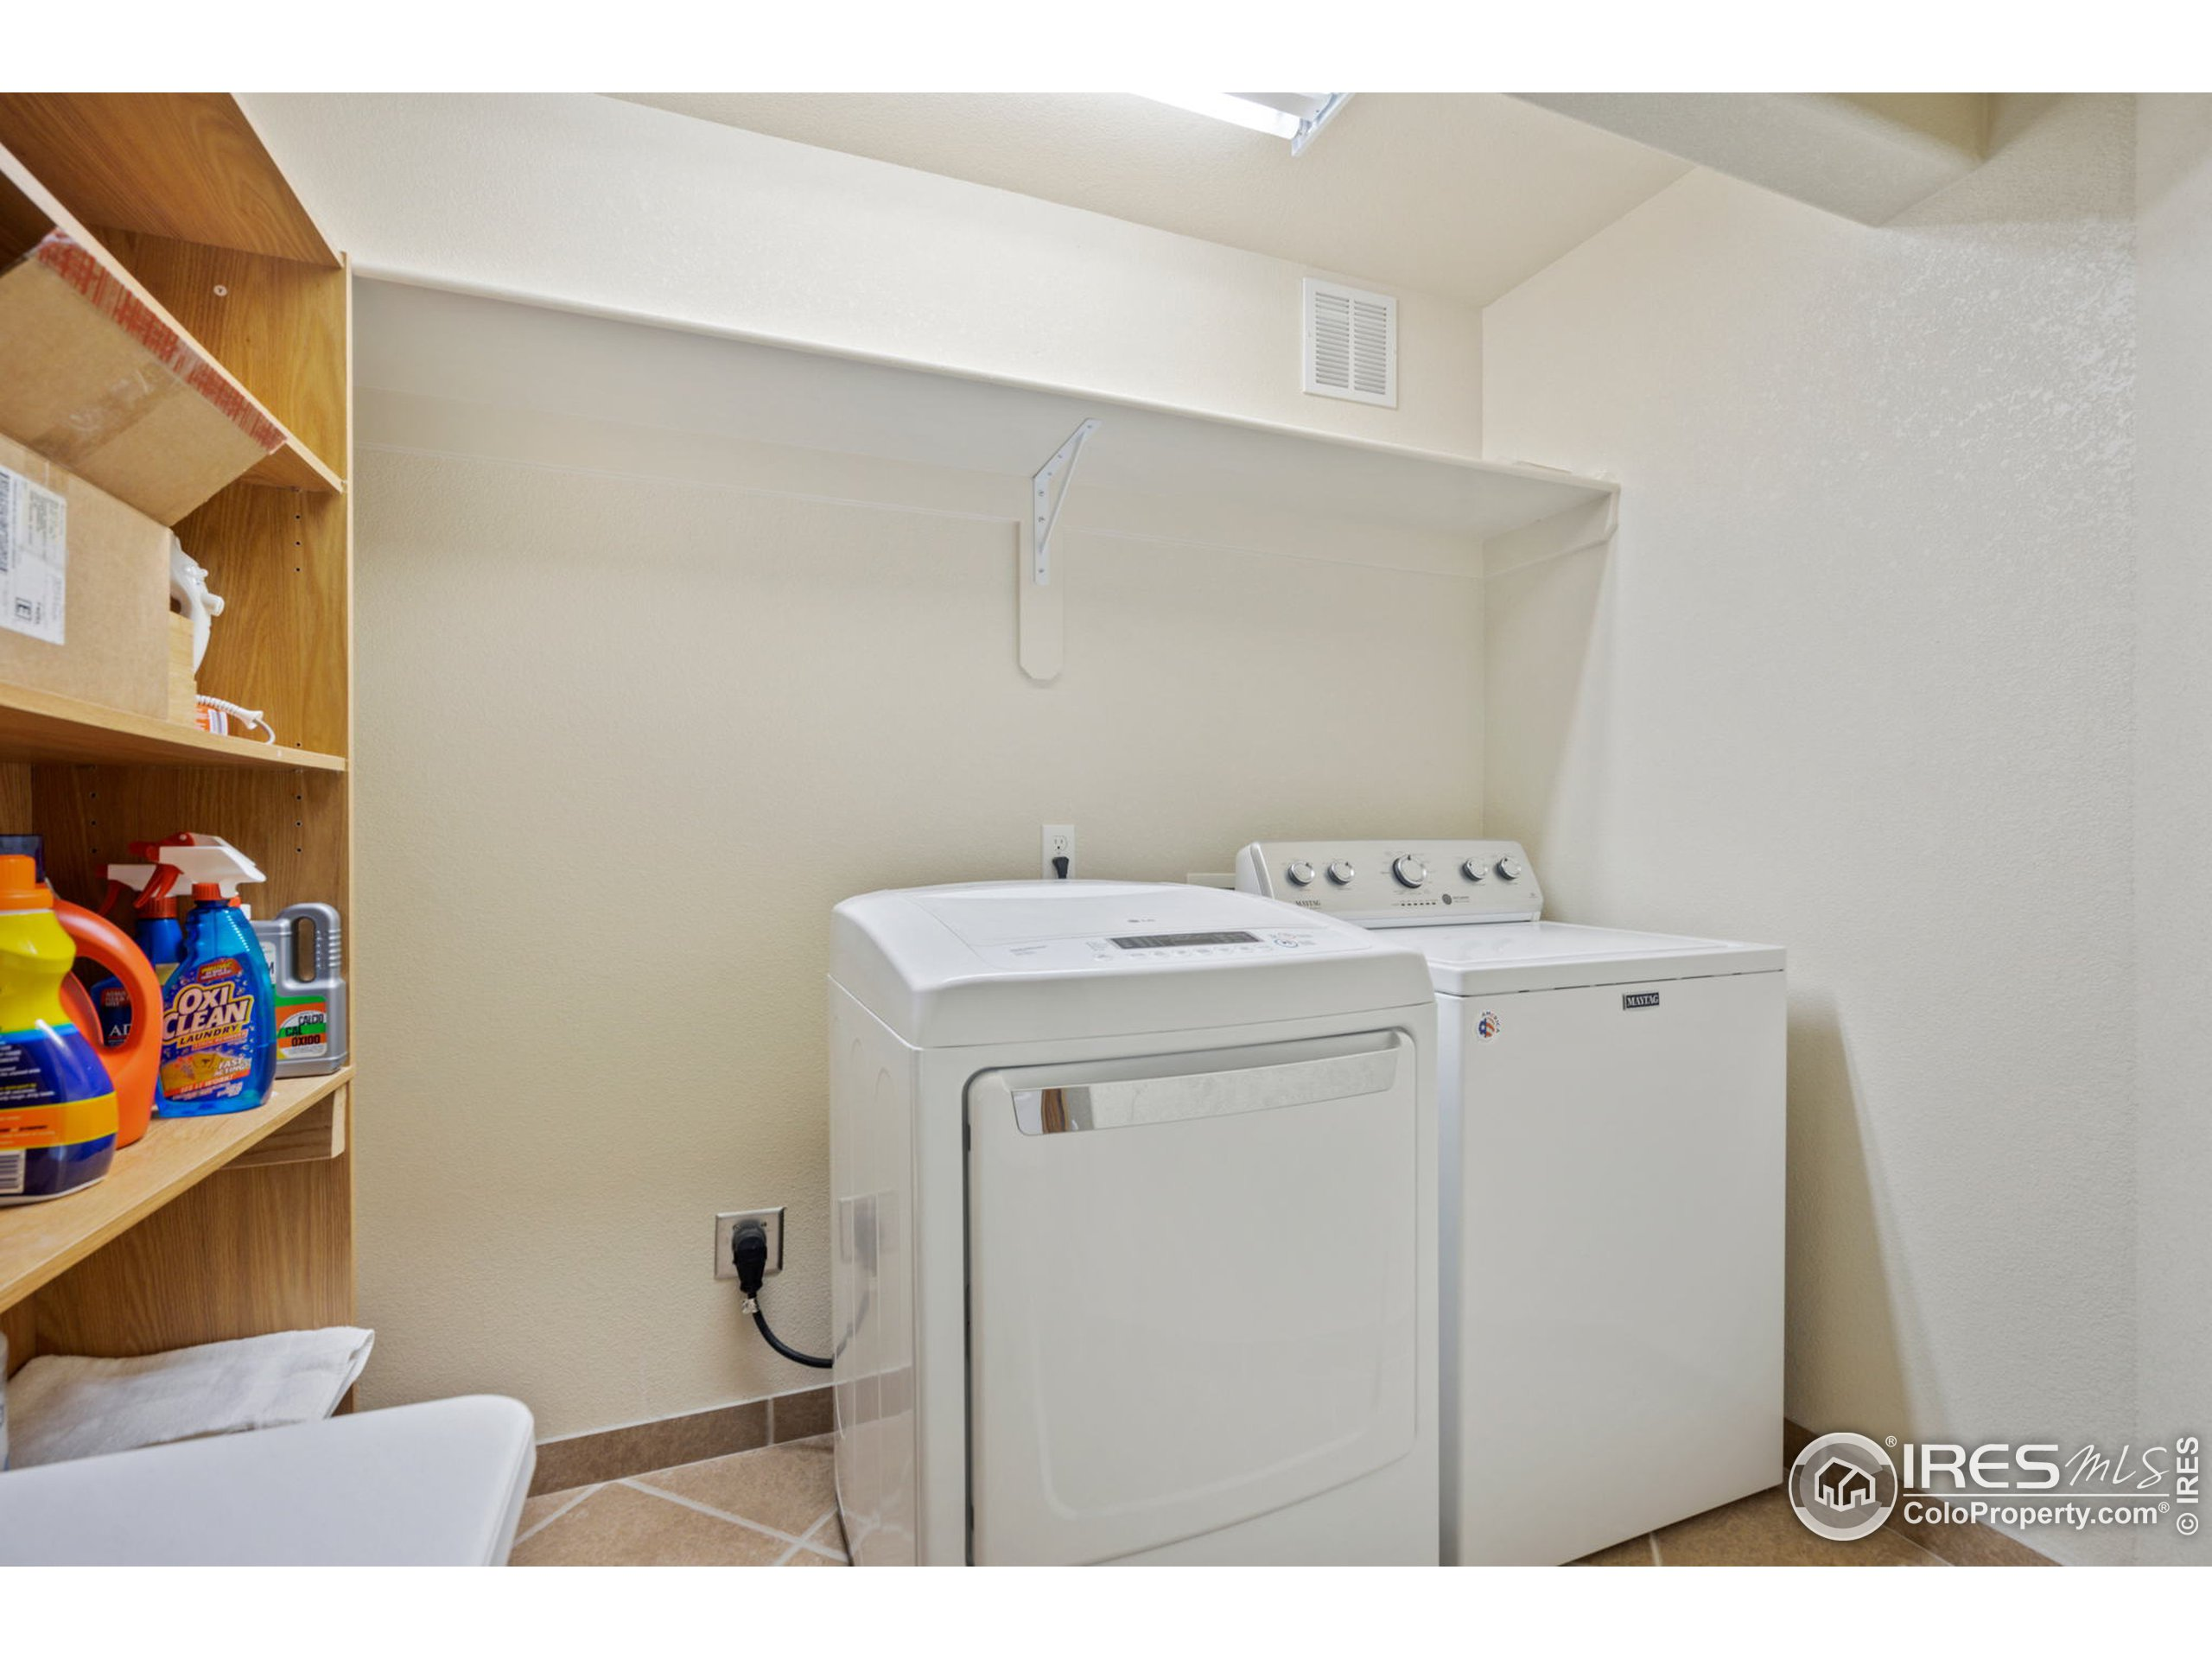 Washer/Dryer hook-ups upstairs and downstairs